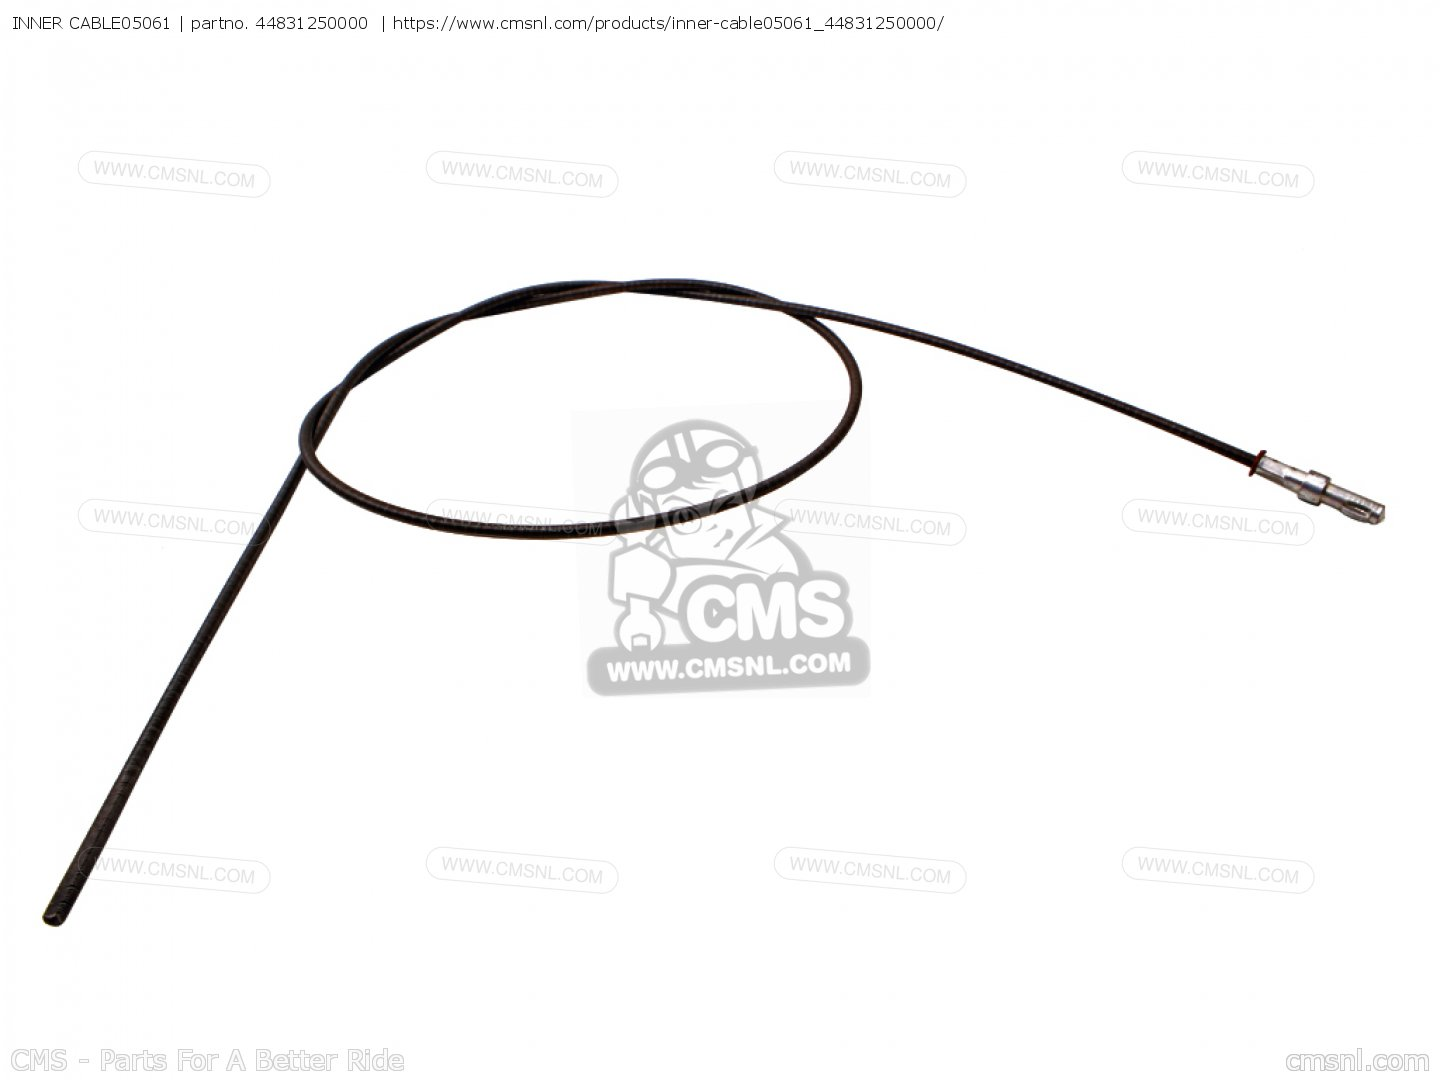 INNER CABLE05061 for CA77 1960 1961 1962 1963 1964I 1964II